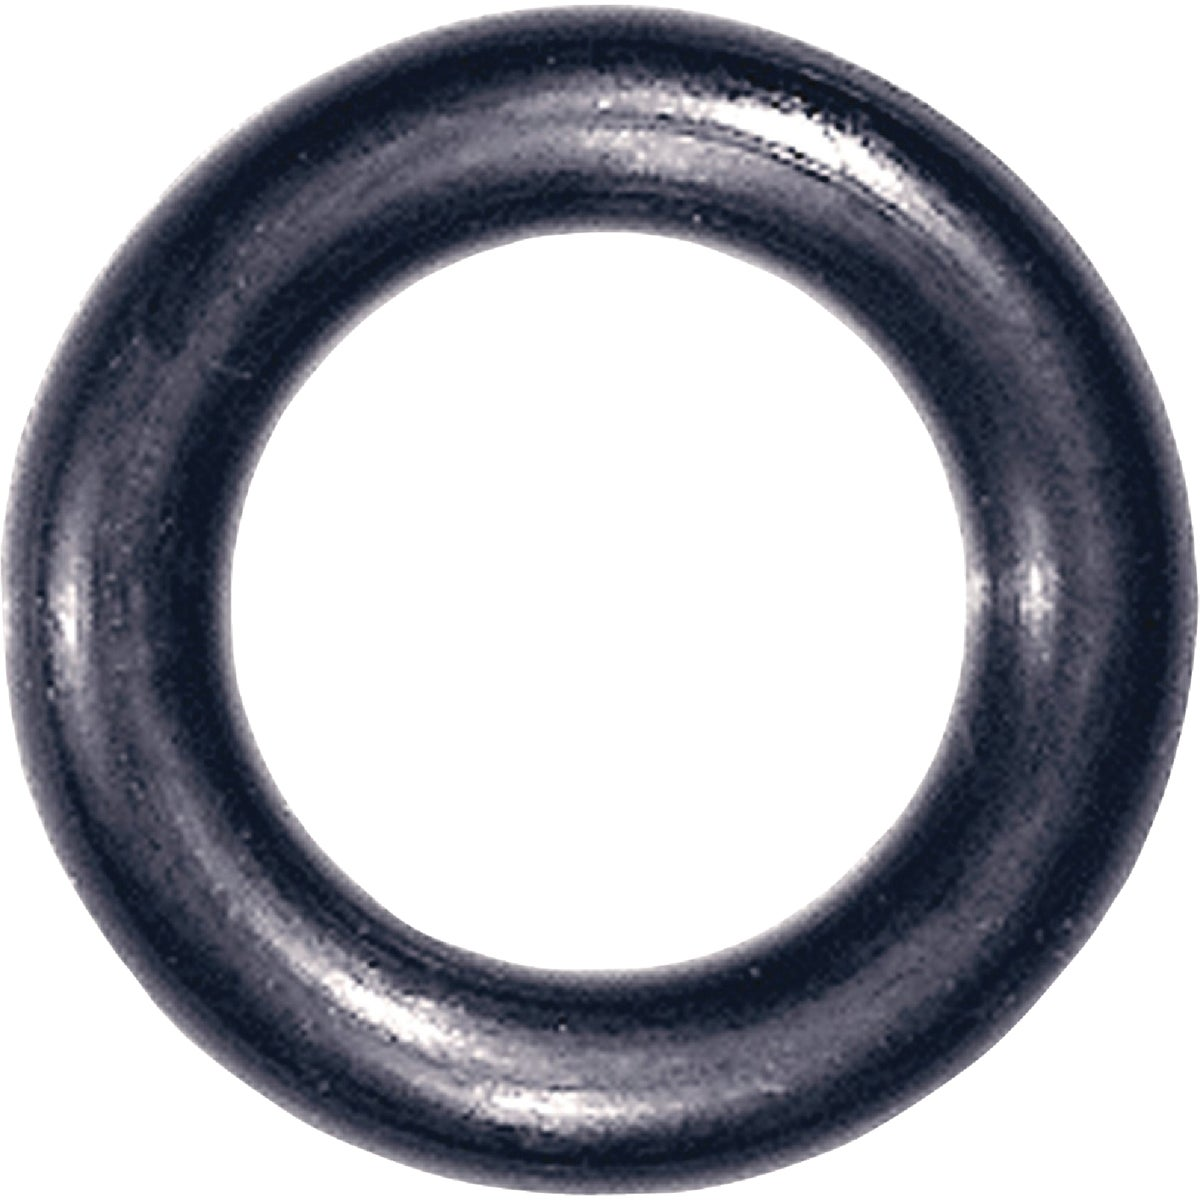 #74 O-RING - 9D0035719B by Danco Perfect Match